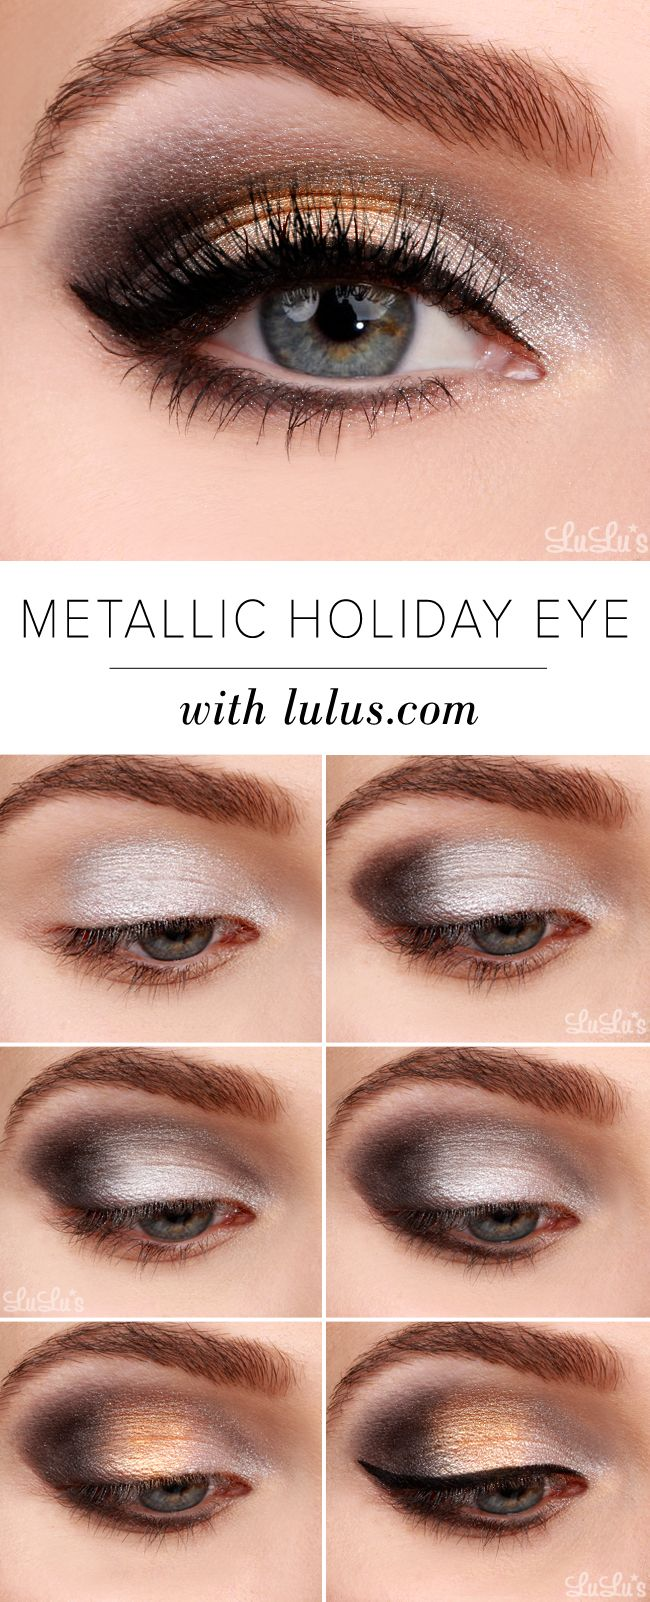 We're popping bottles and toasting to a glamorous new year with this week's Metallic Holiday Eyeshadow Tutorial in our beauty repertoire!